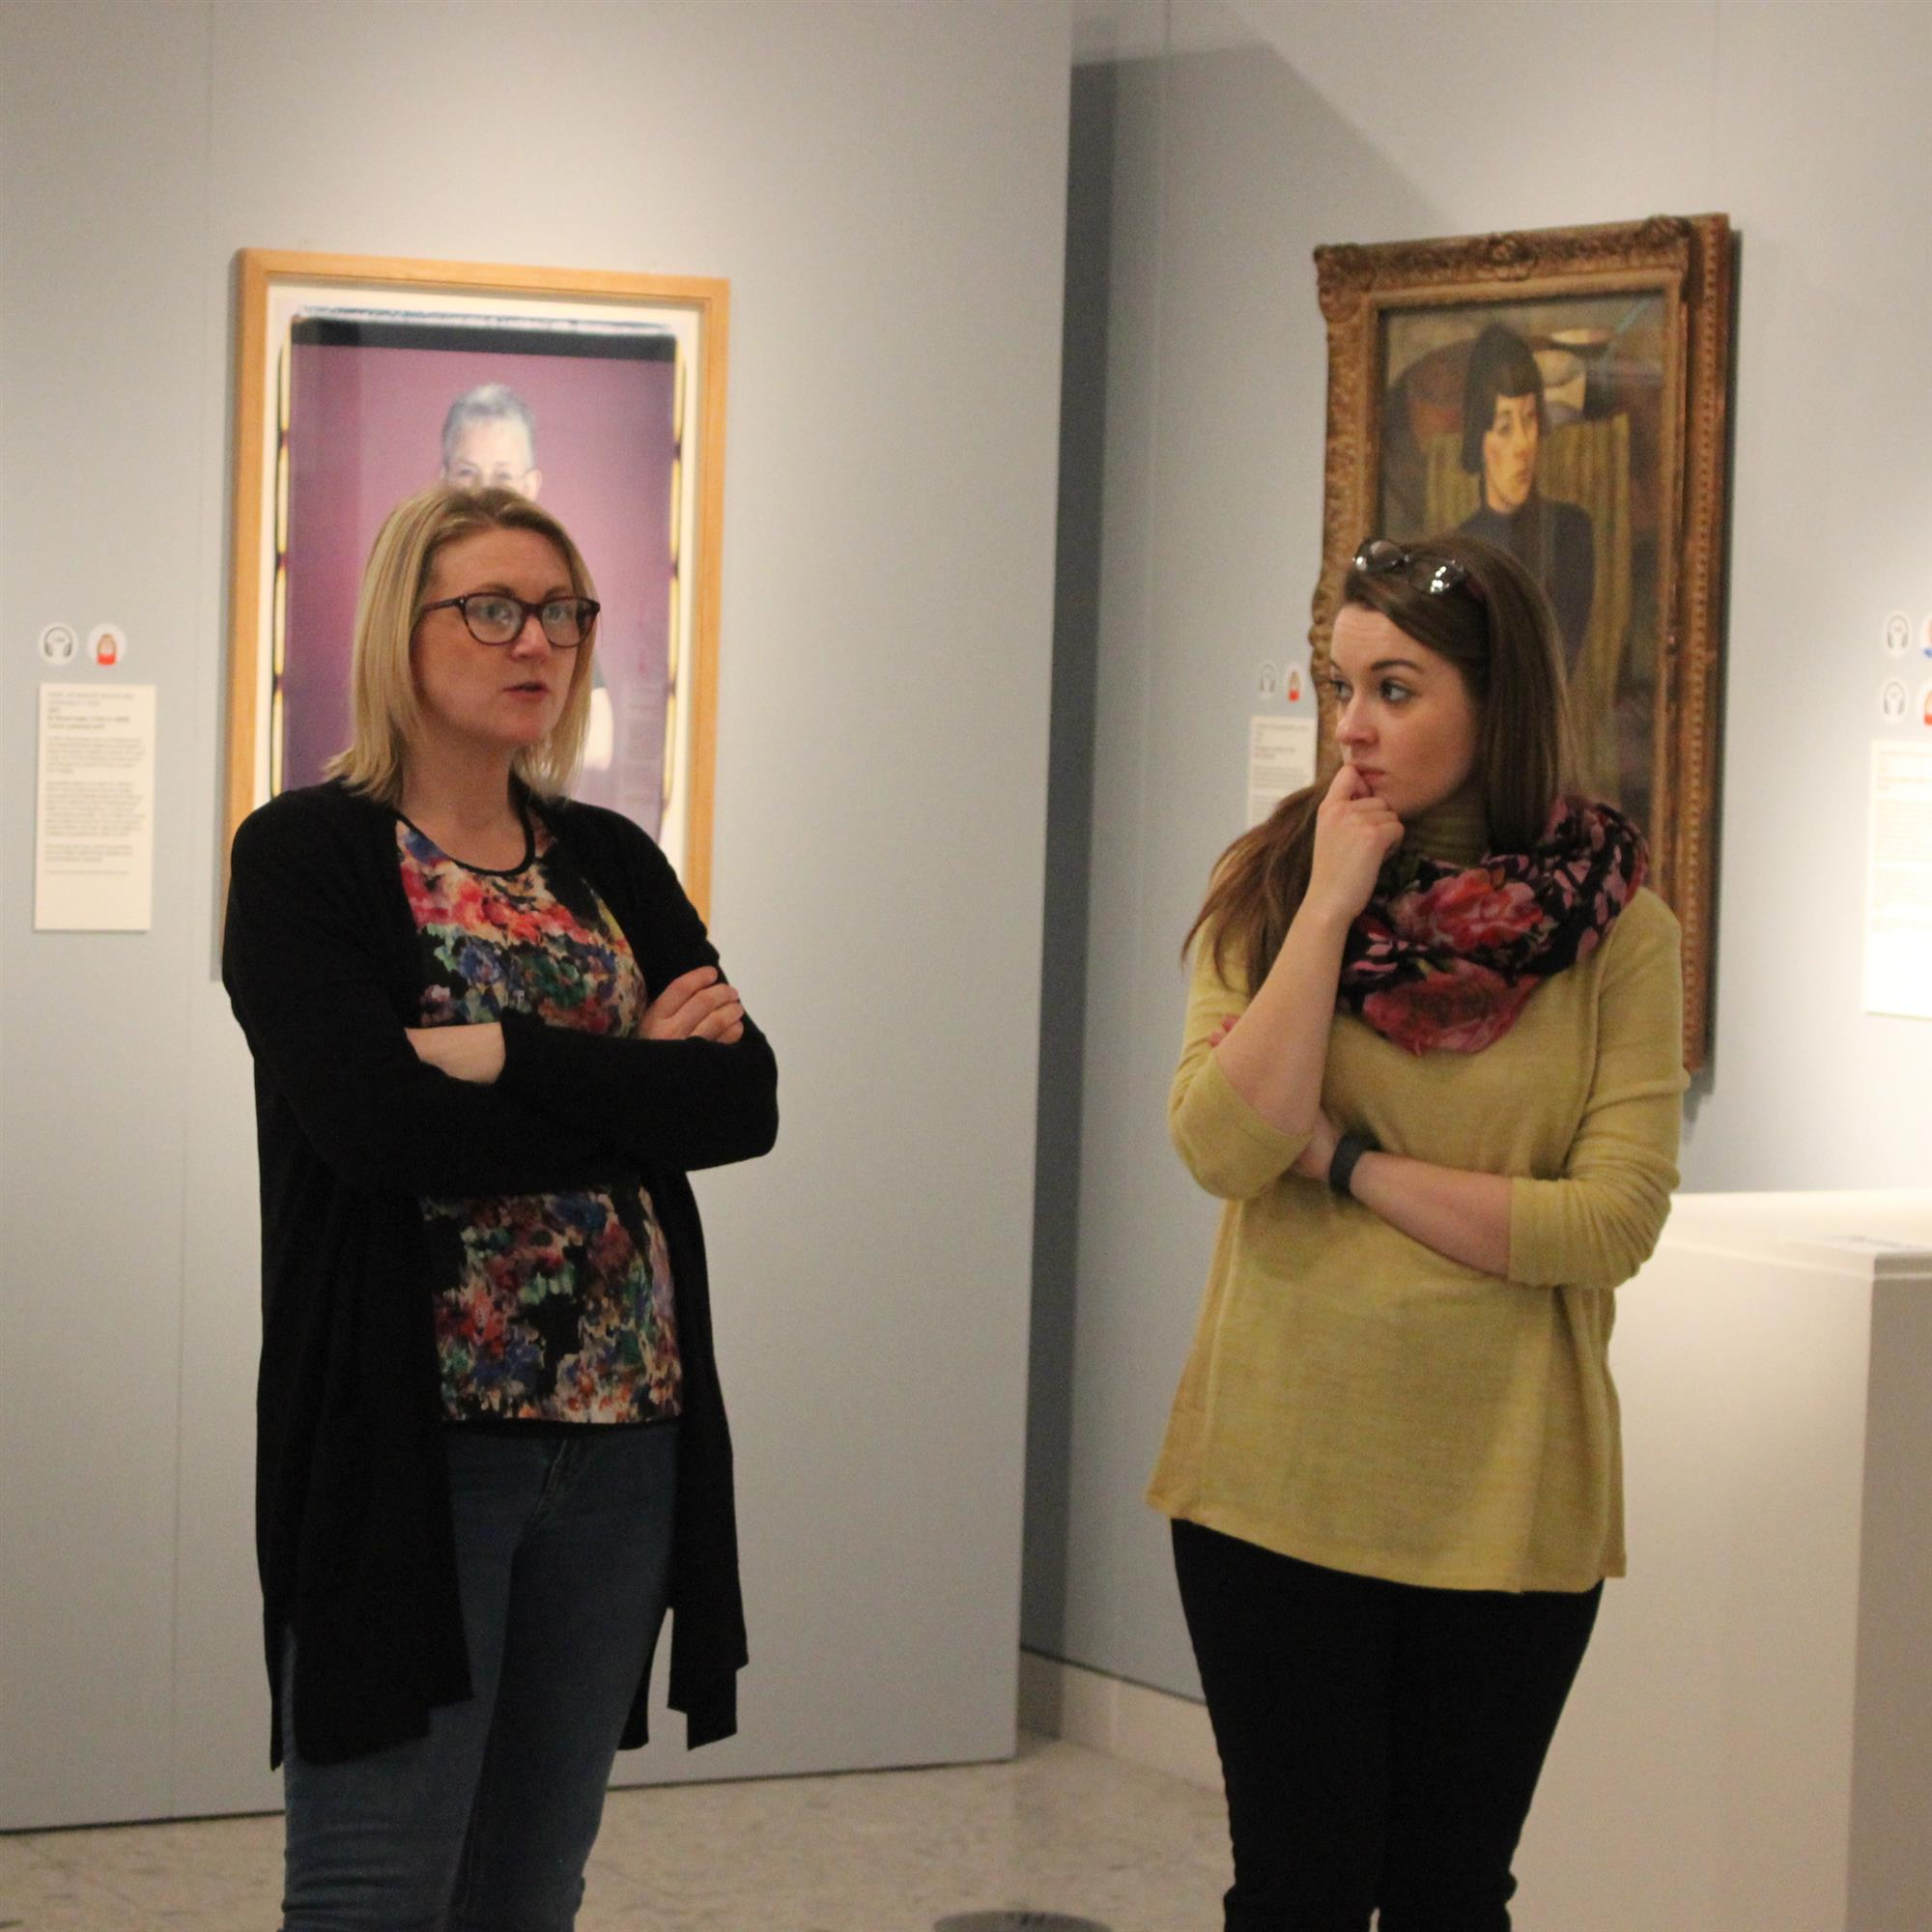 Two thoughtful women stand in front of portraits